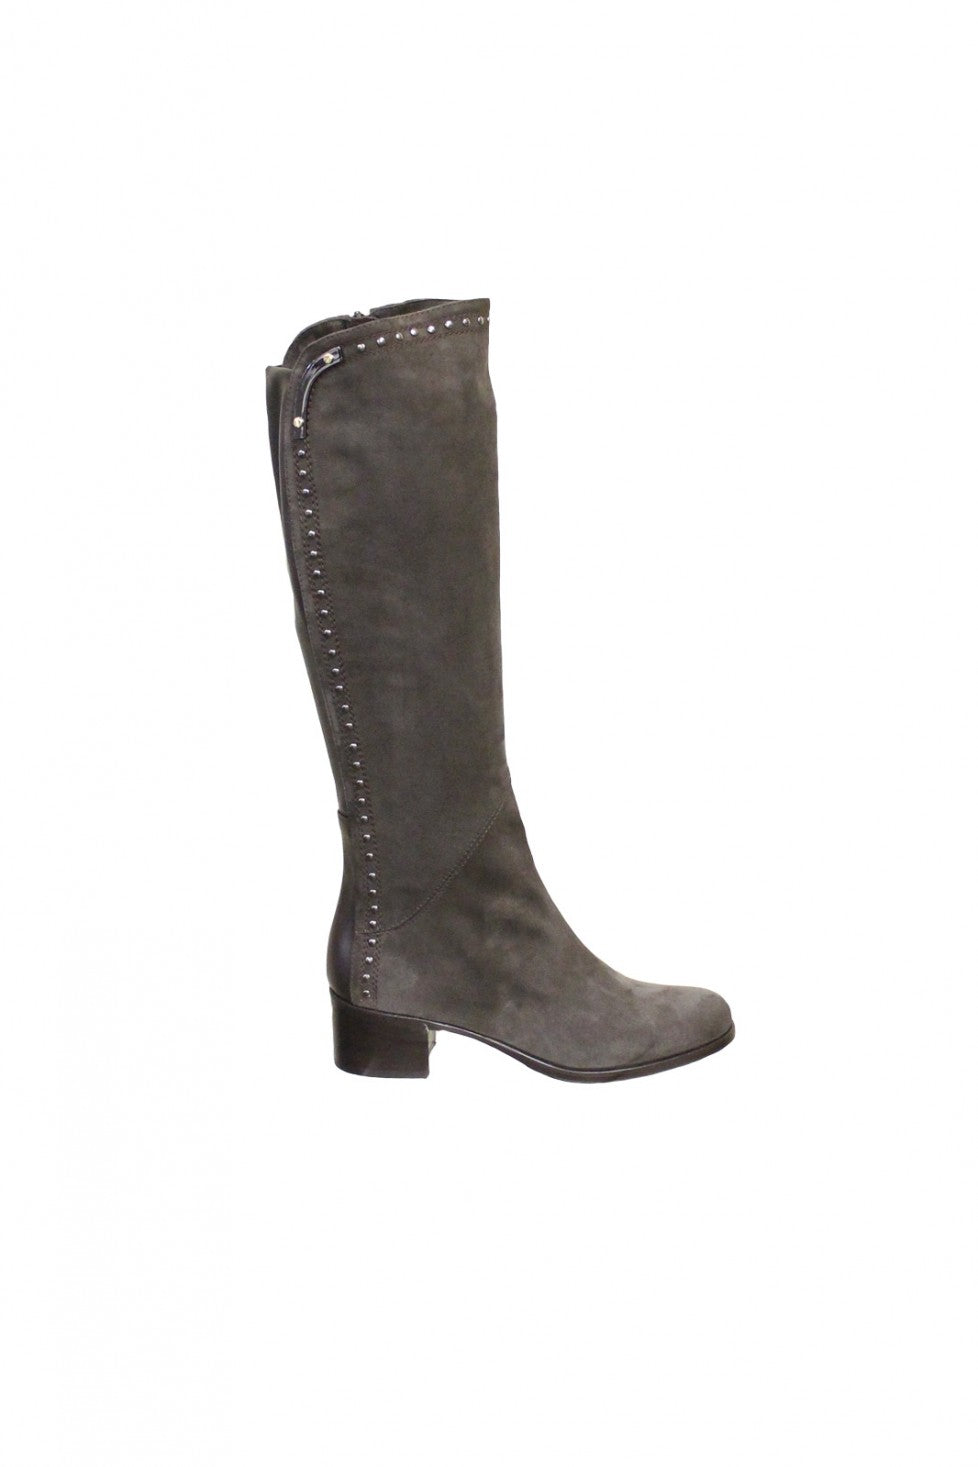 studded-knee-high-le-pepe-fumo-boot-style-and-grace